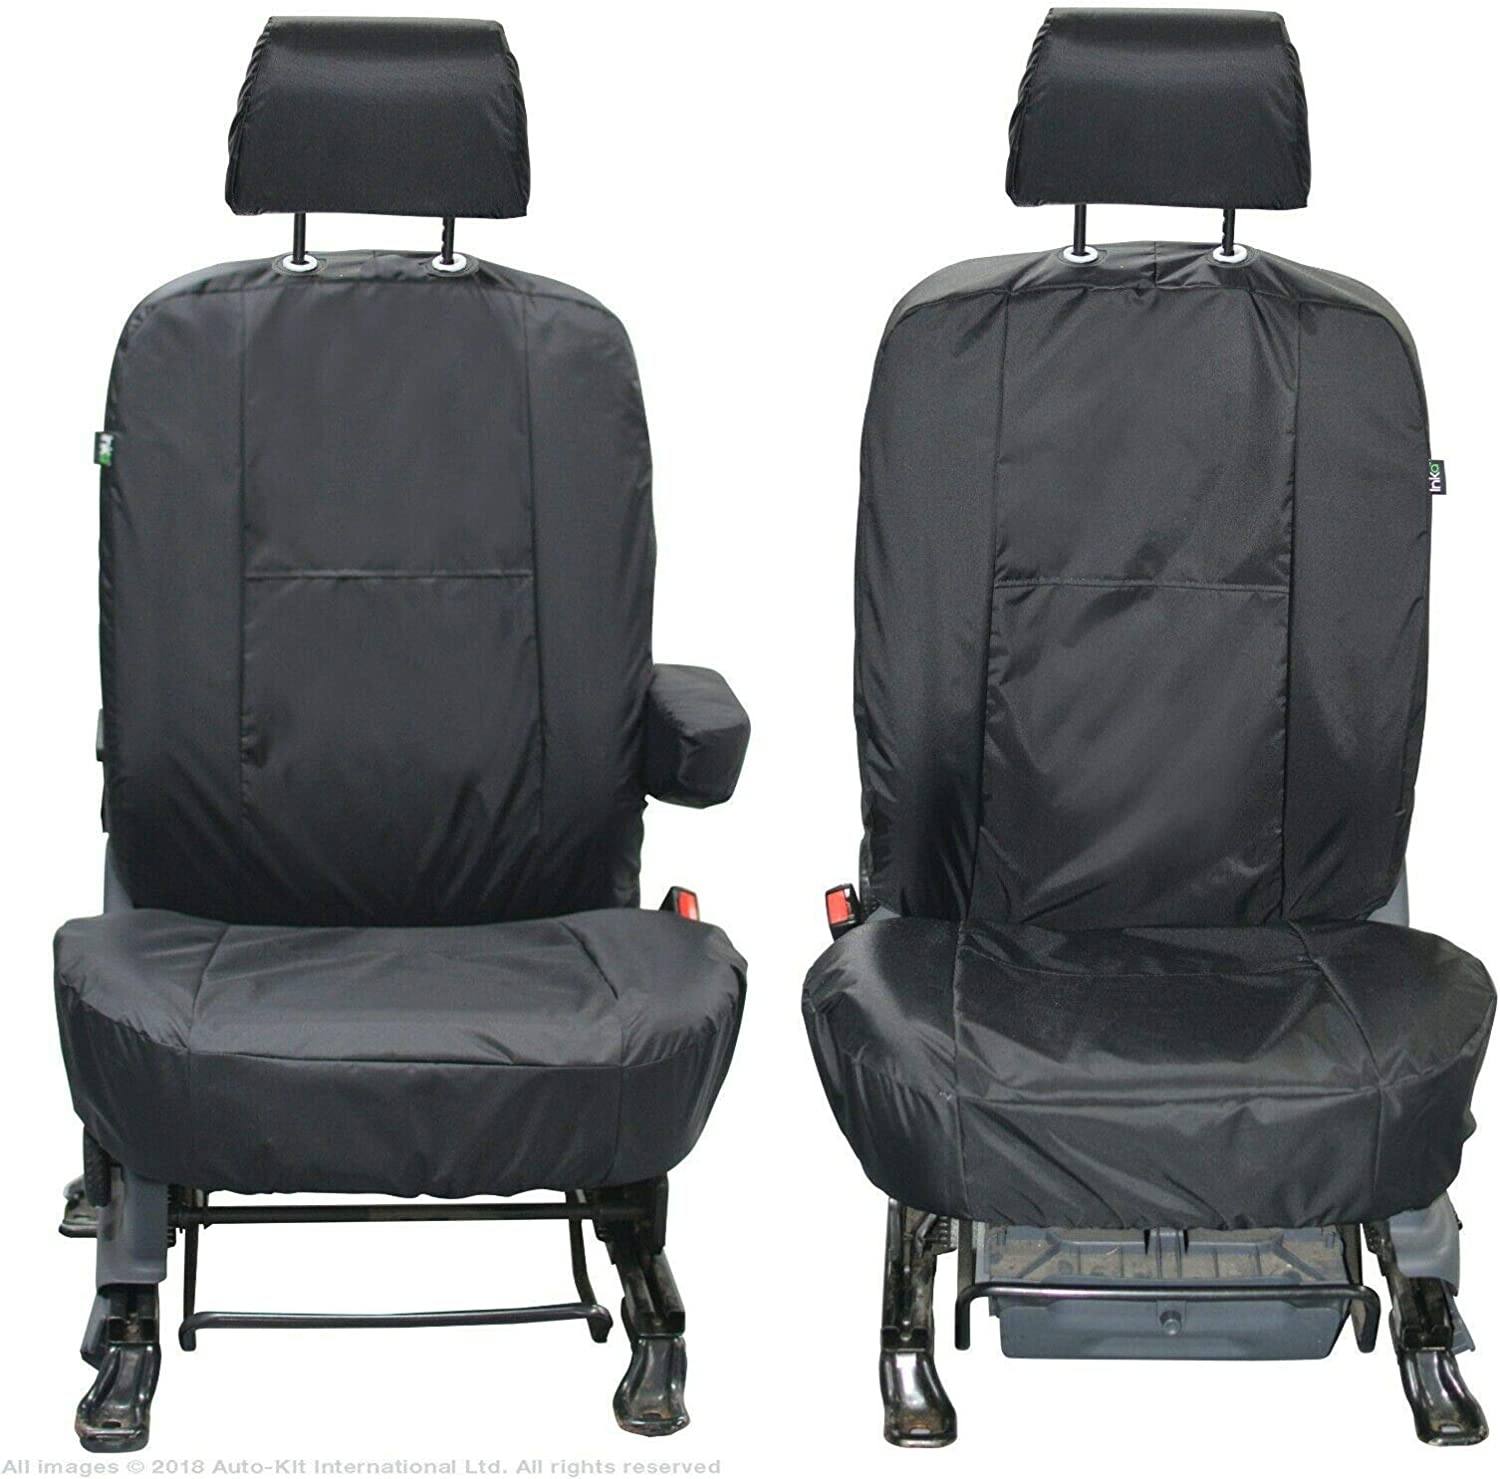 INKA Fully Tailored Waterproof Front Seat Covers Black MY 2002-2013 to fit Ford Transit Connect Tourneo MK1